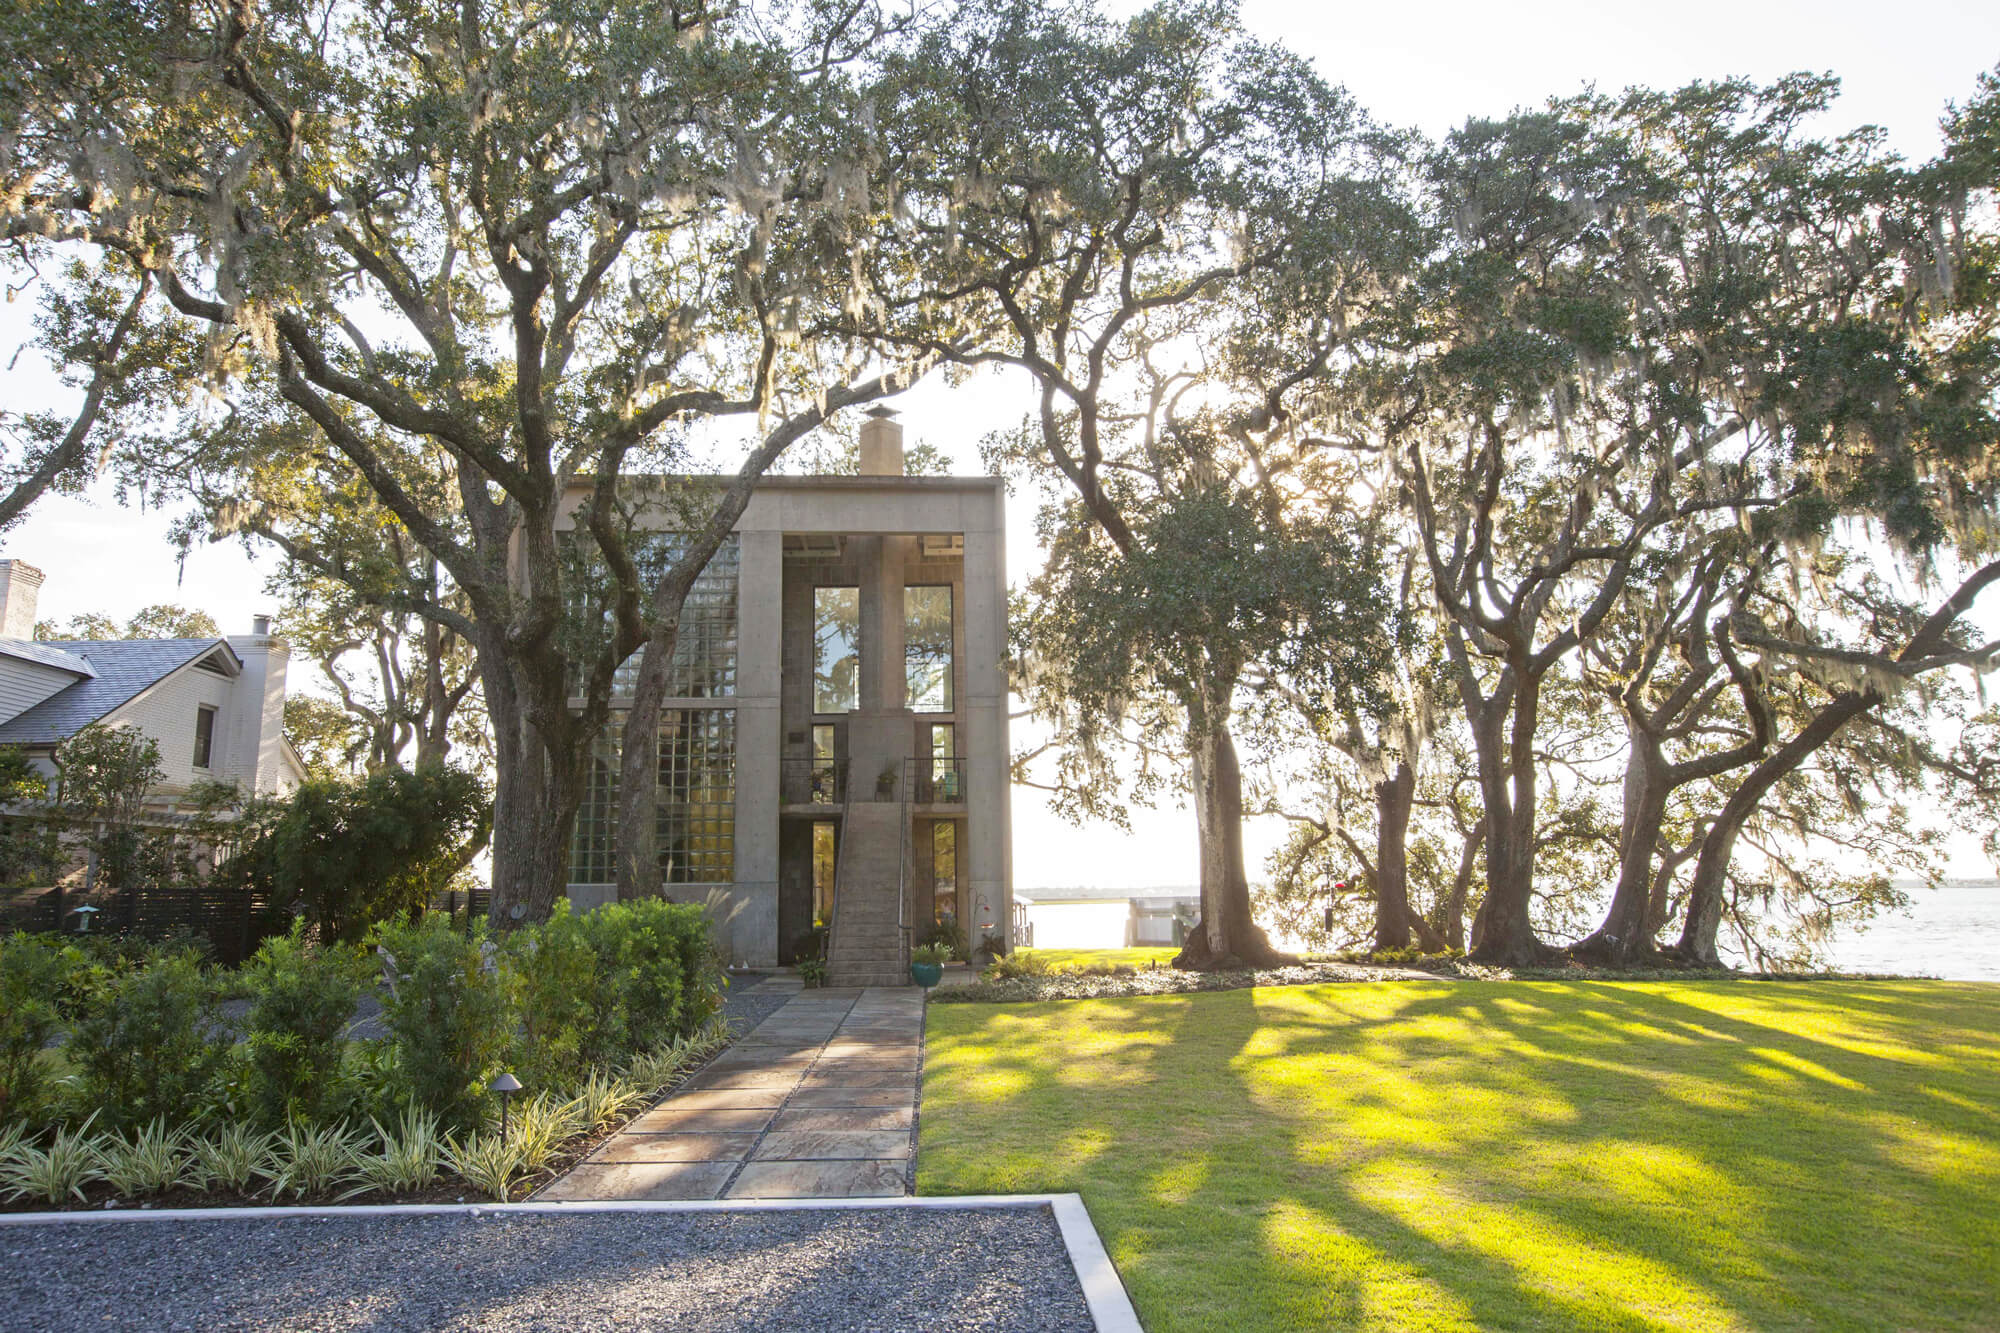 Outdoor-Spatial-Design-Charleston-South-Carolina